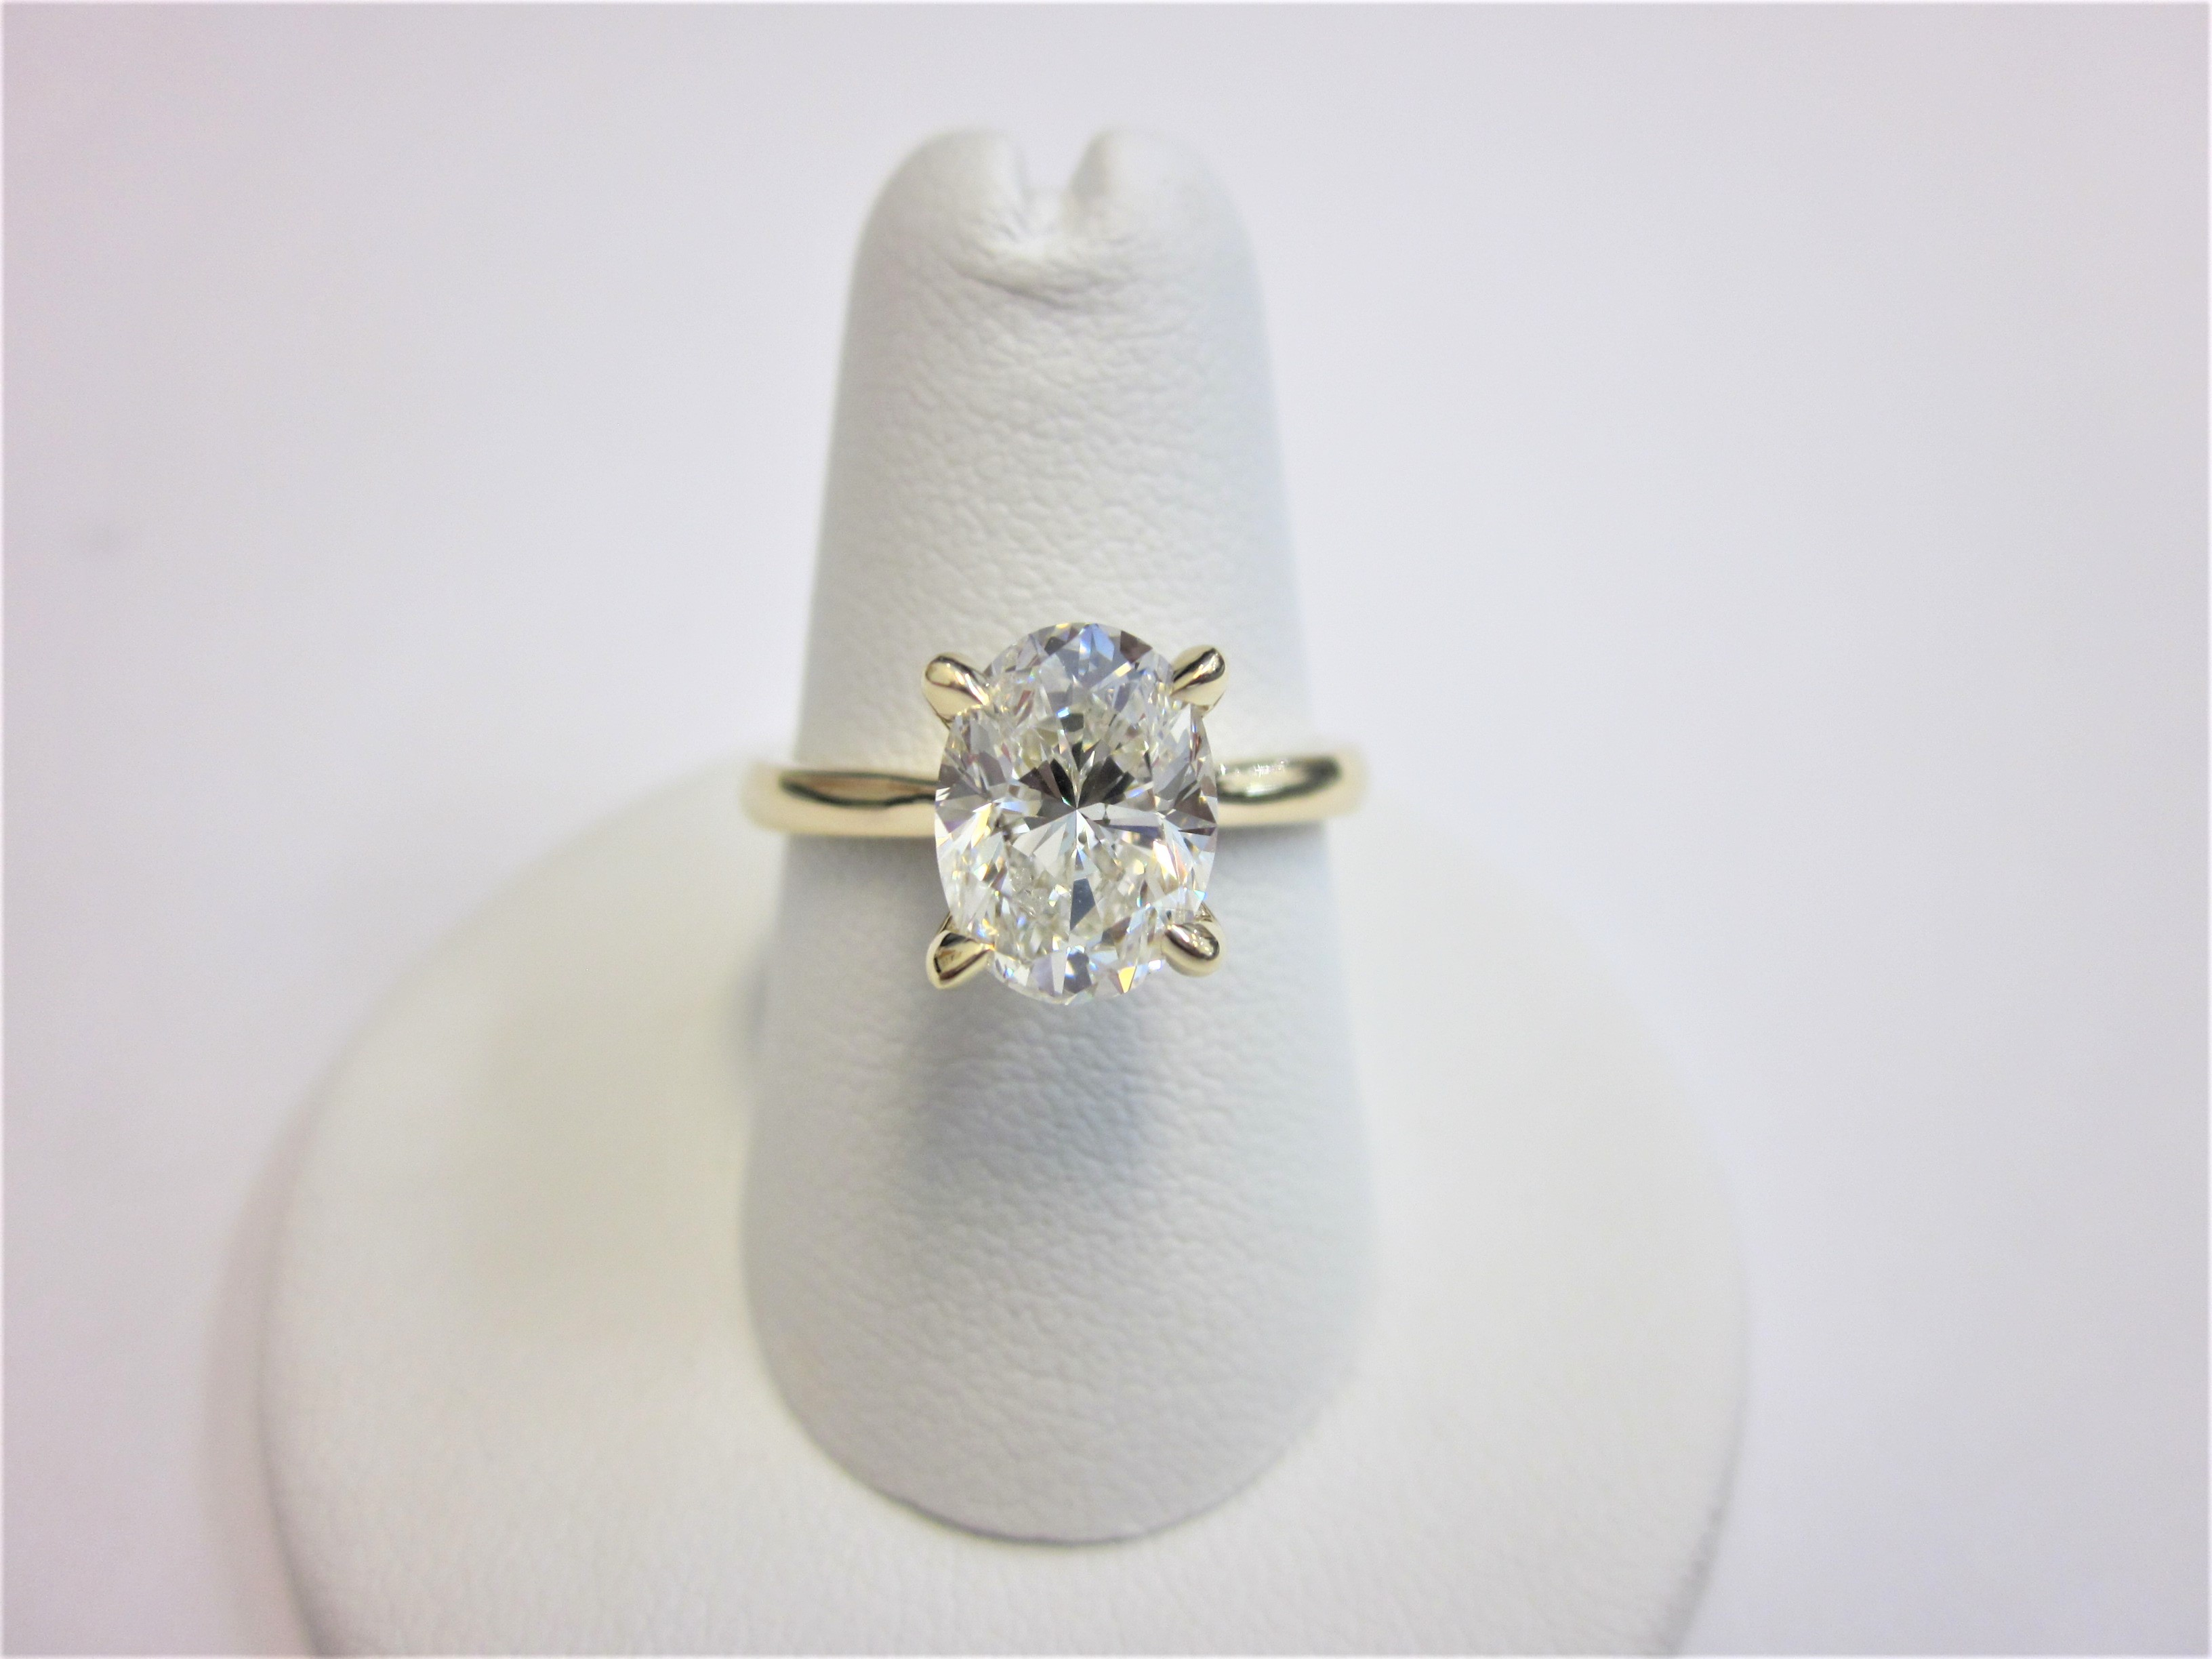 colour gallery clarity engagement trilogy f diamond min cut vs total diamonds x platinum rings oval